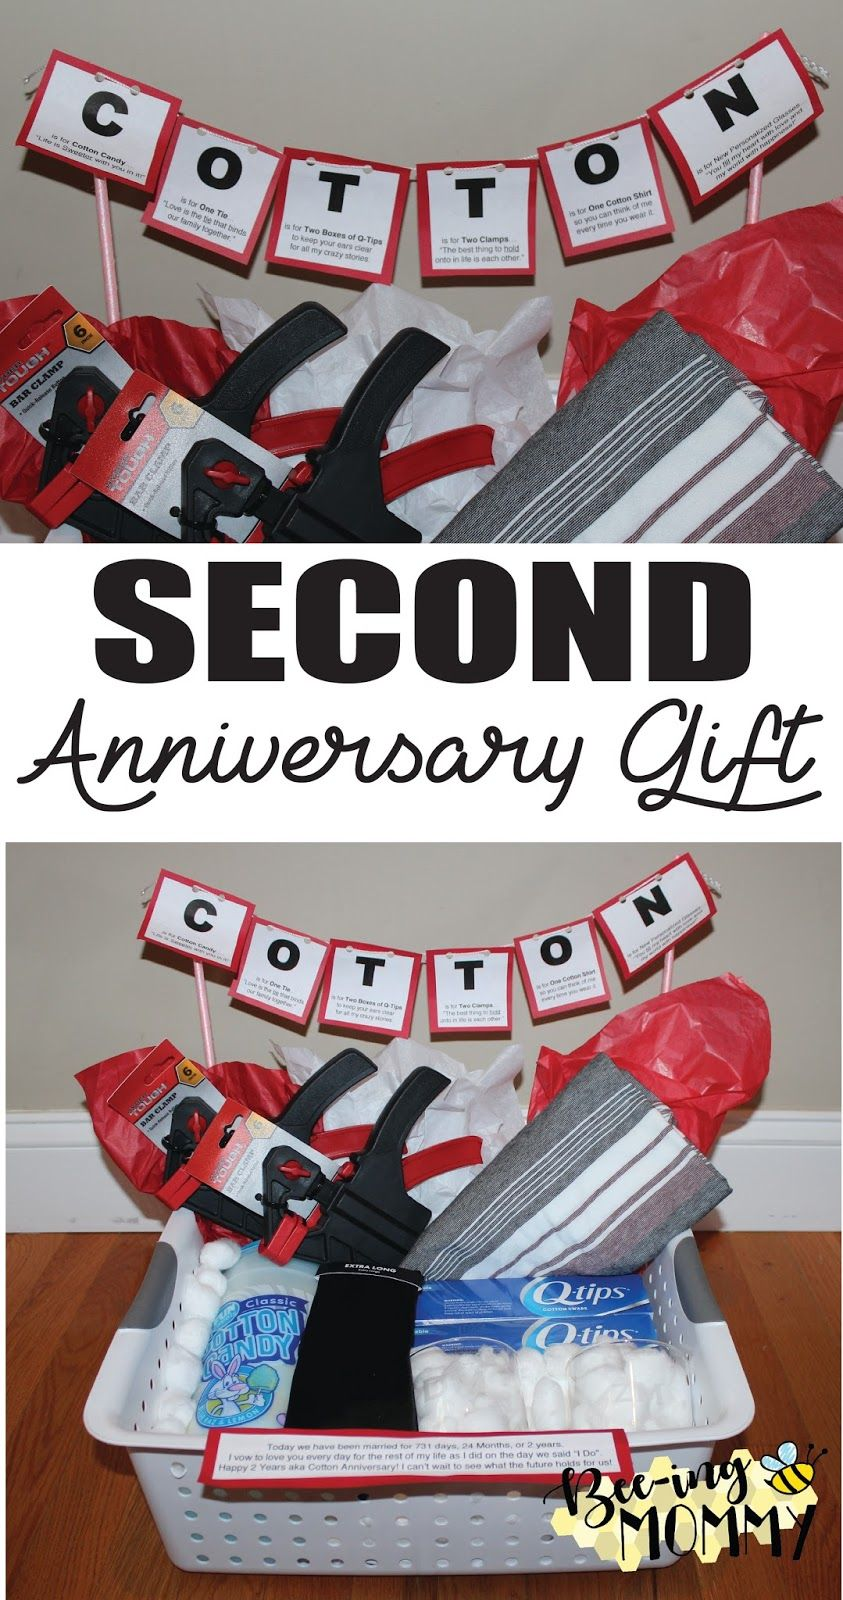 Cotton Anniversary Gift Basket plus several more gift